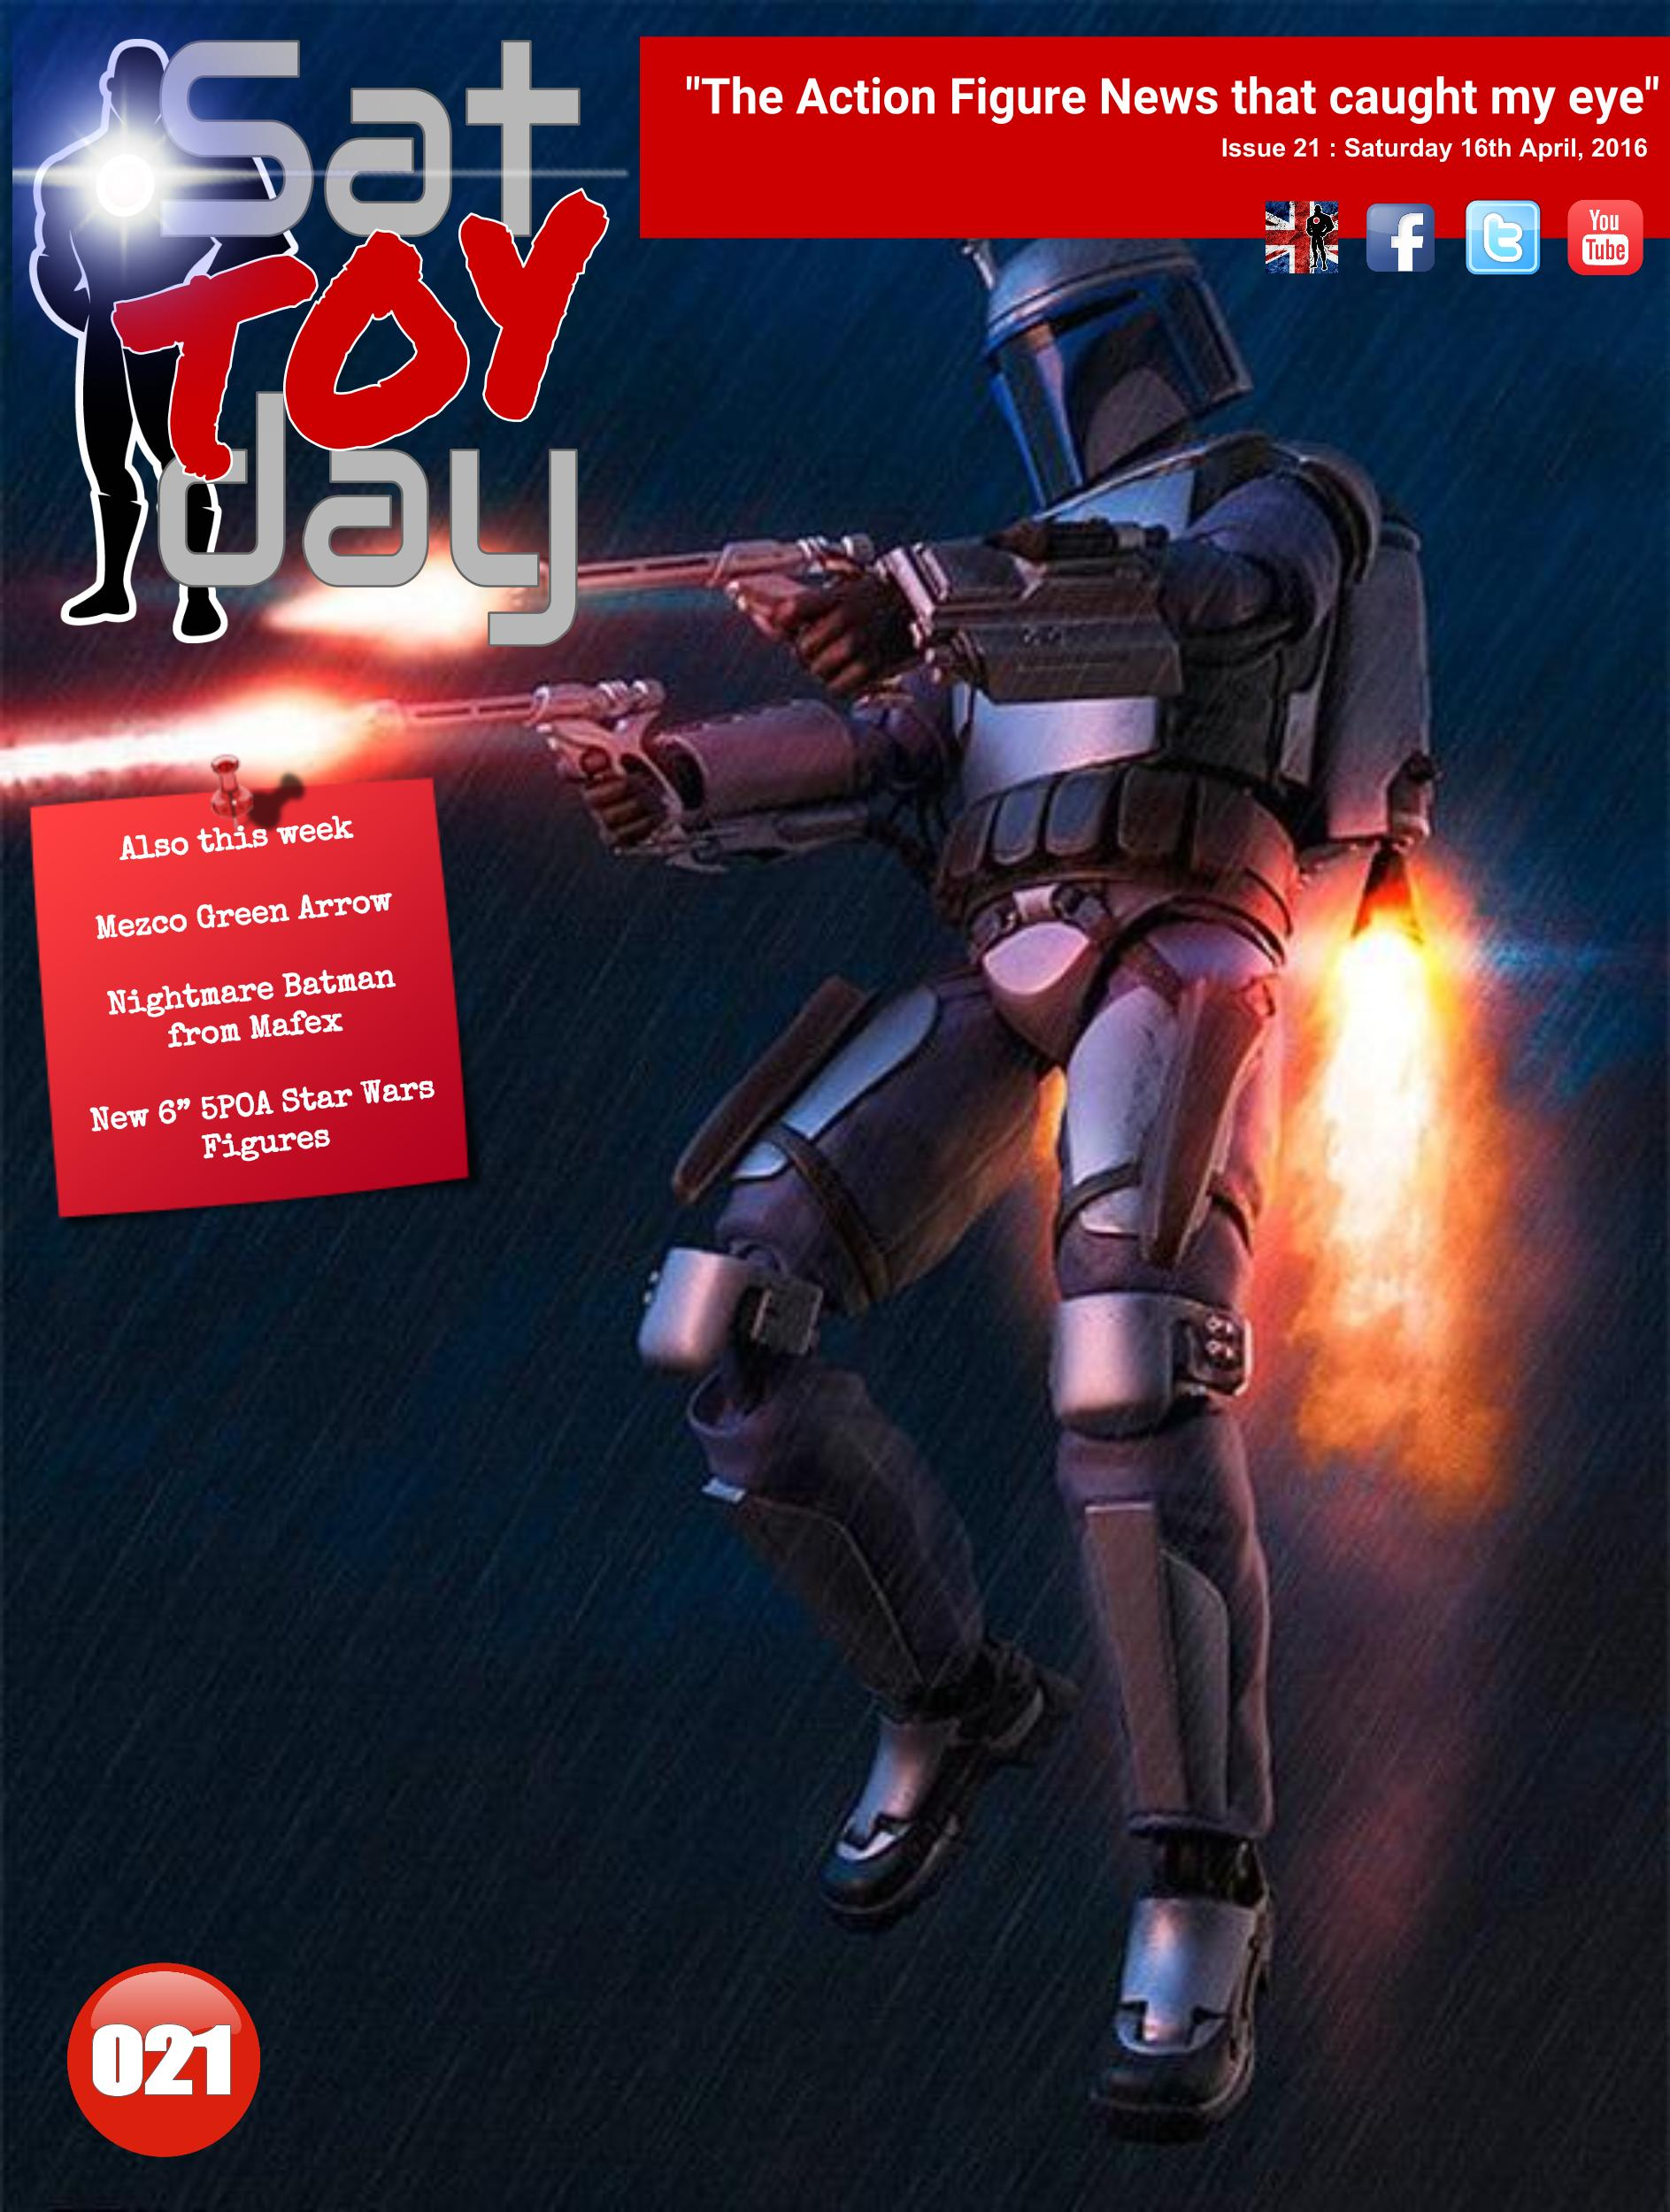 021 Action Figure Sat-TOY-day News, 16th April 2016